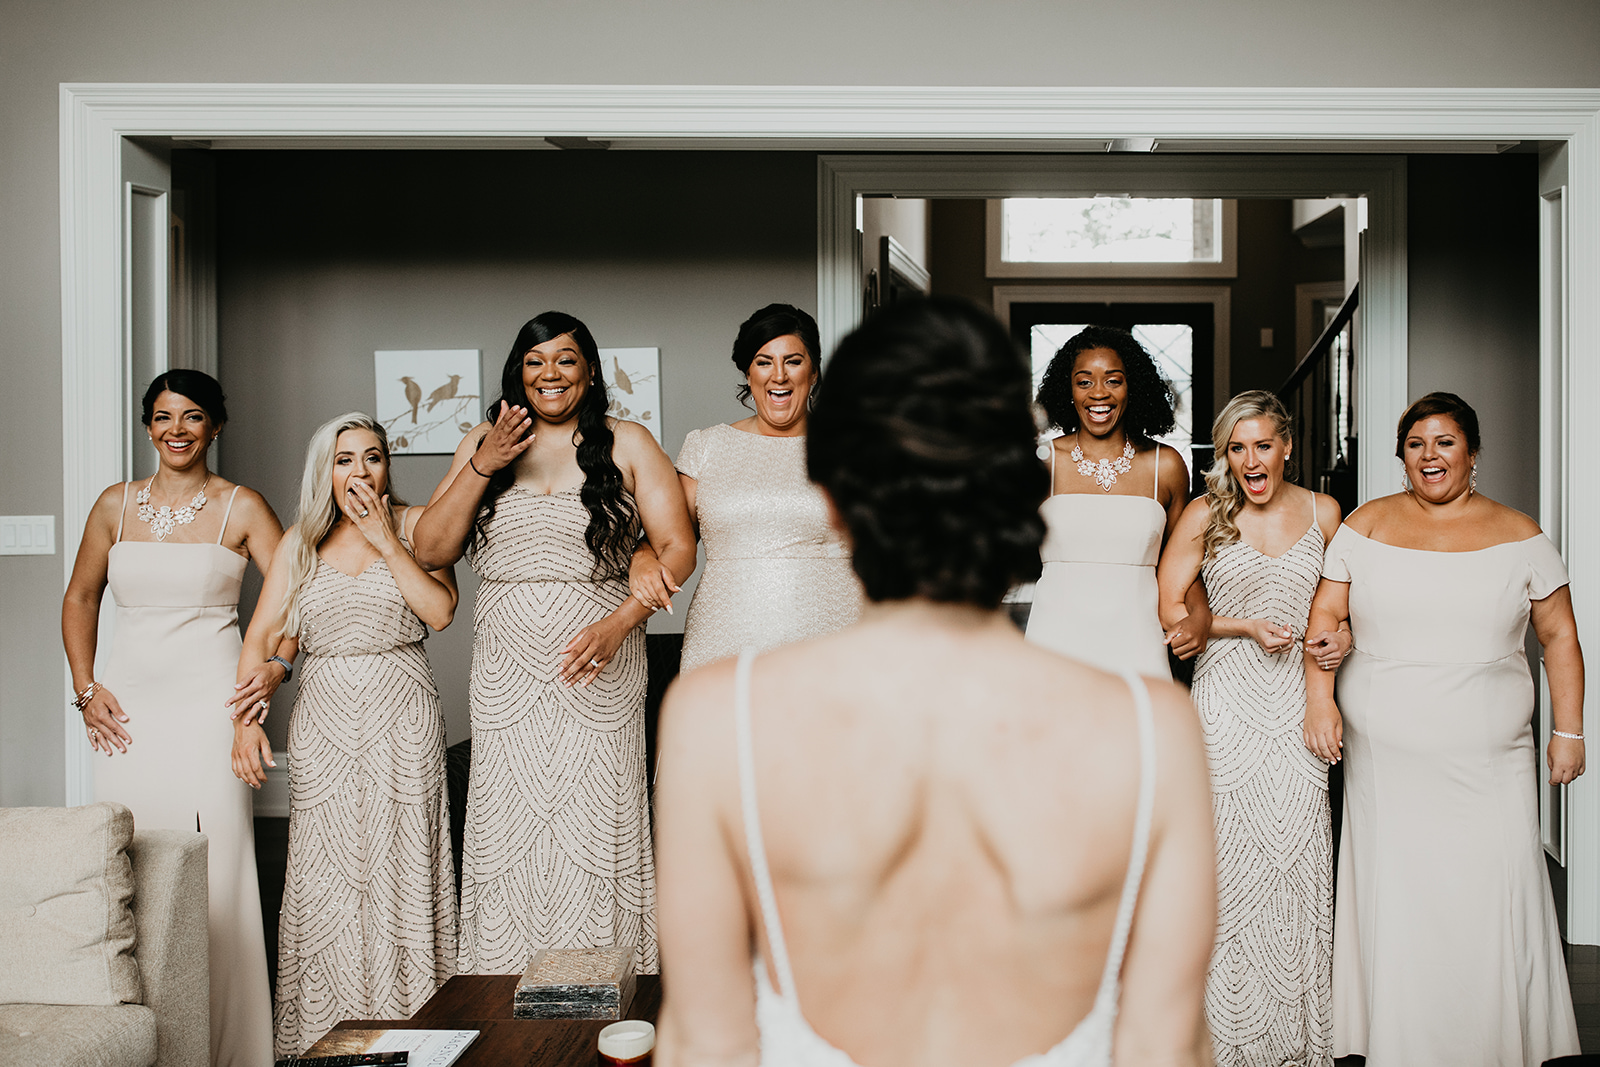 Pittsburghweddingphotography (165 of 1503).jpg